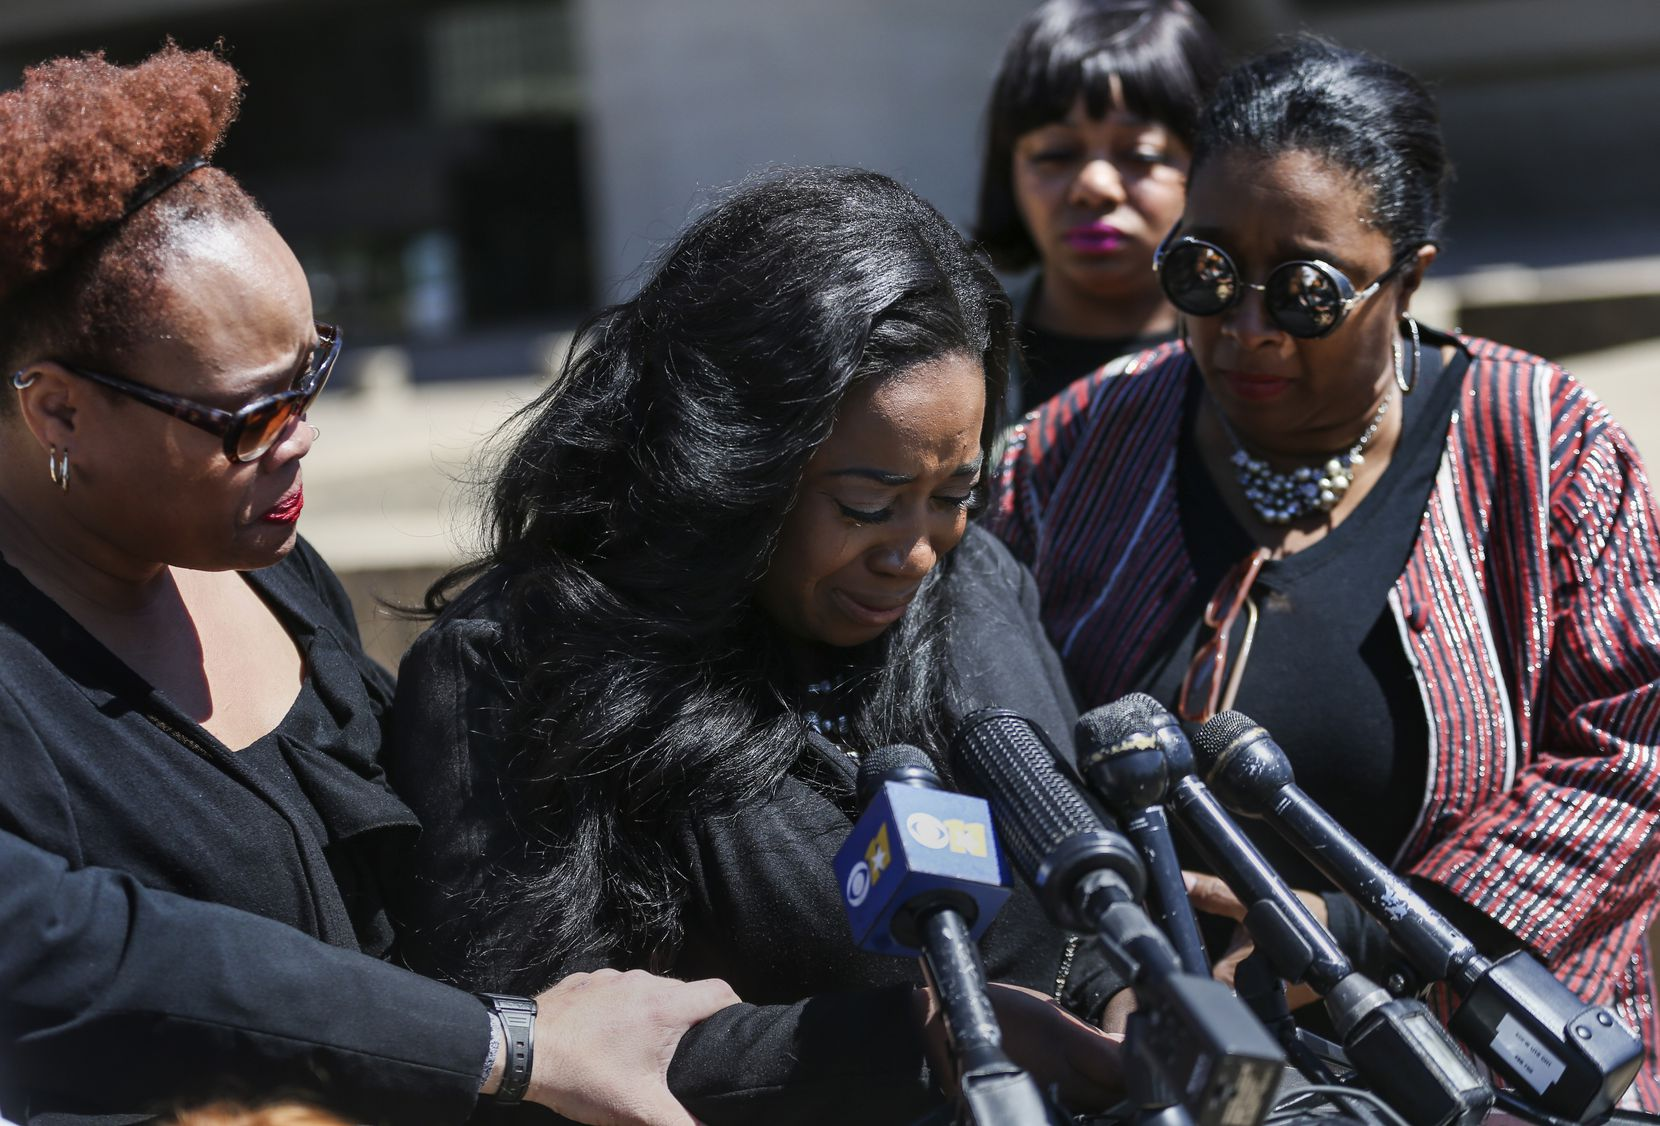 Supporters surround Keyaira Saunders as she speaks during a news conference at Dallas City Hall on April 19.